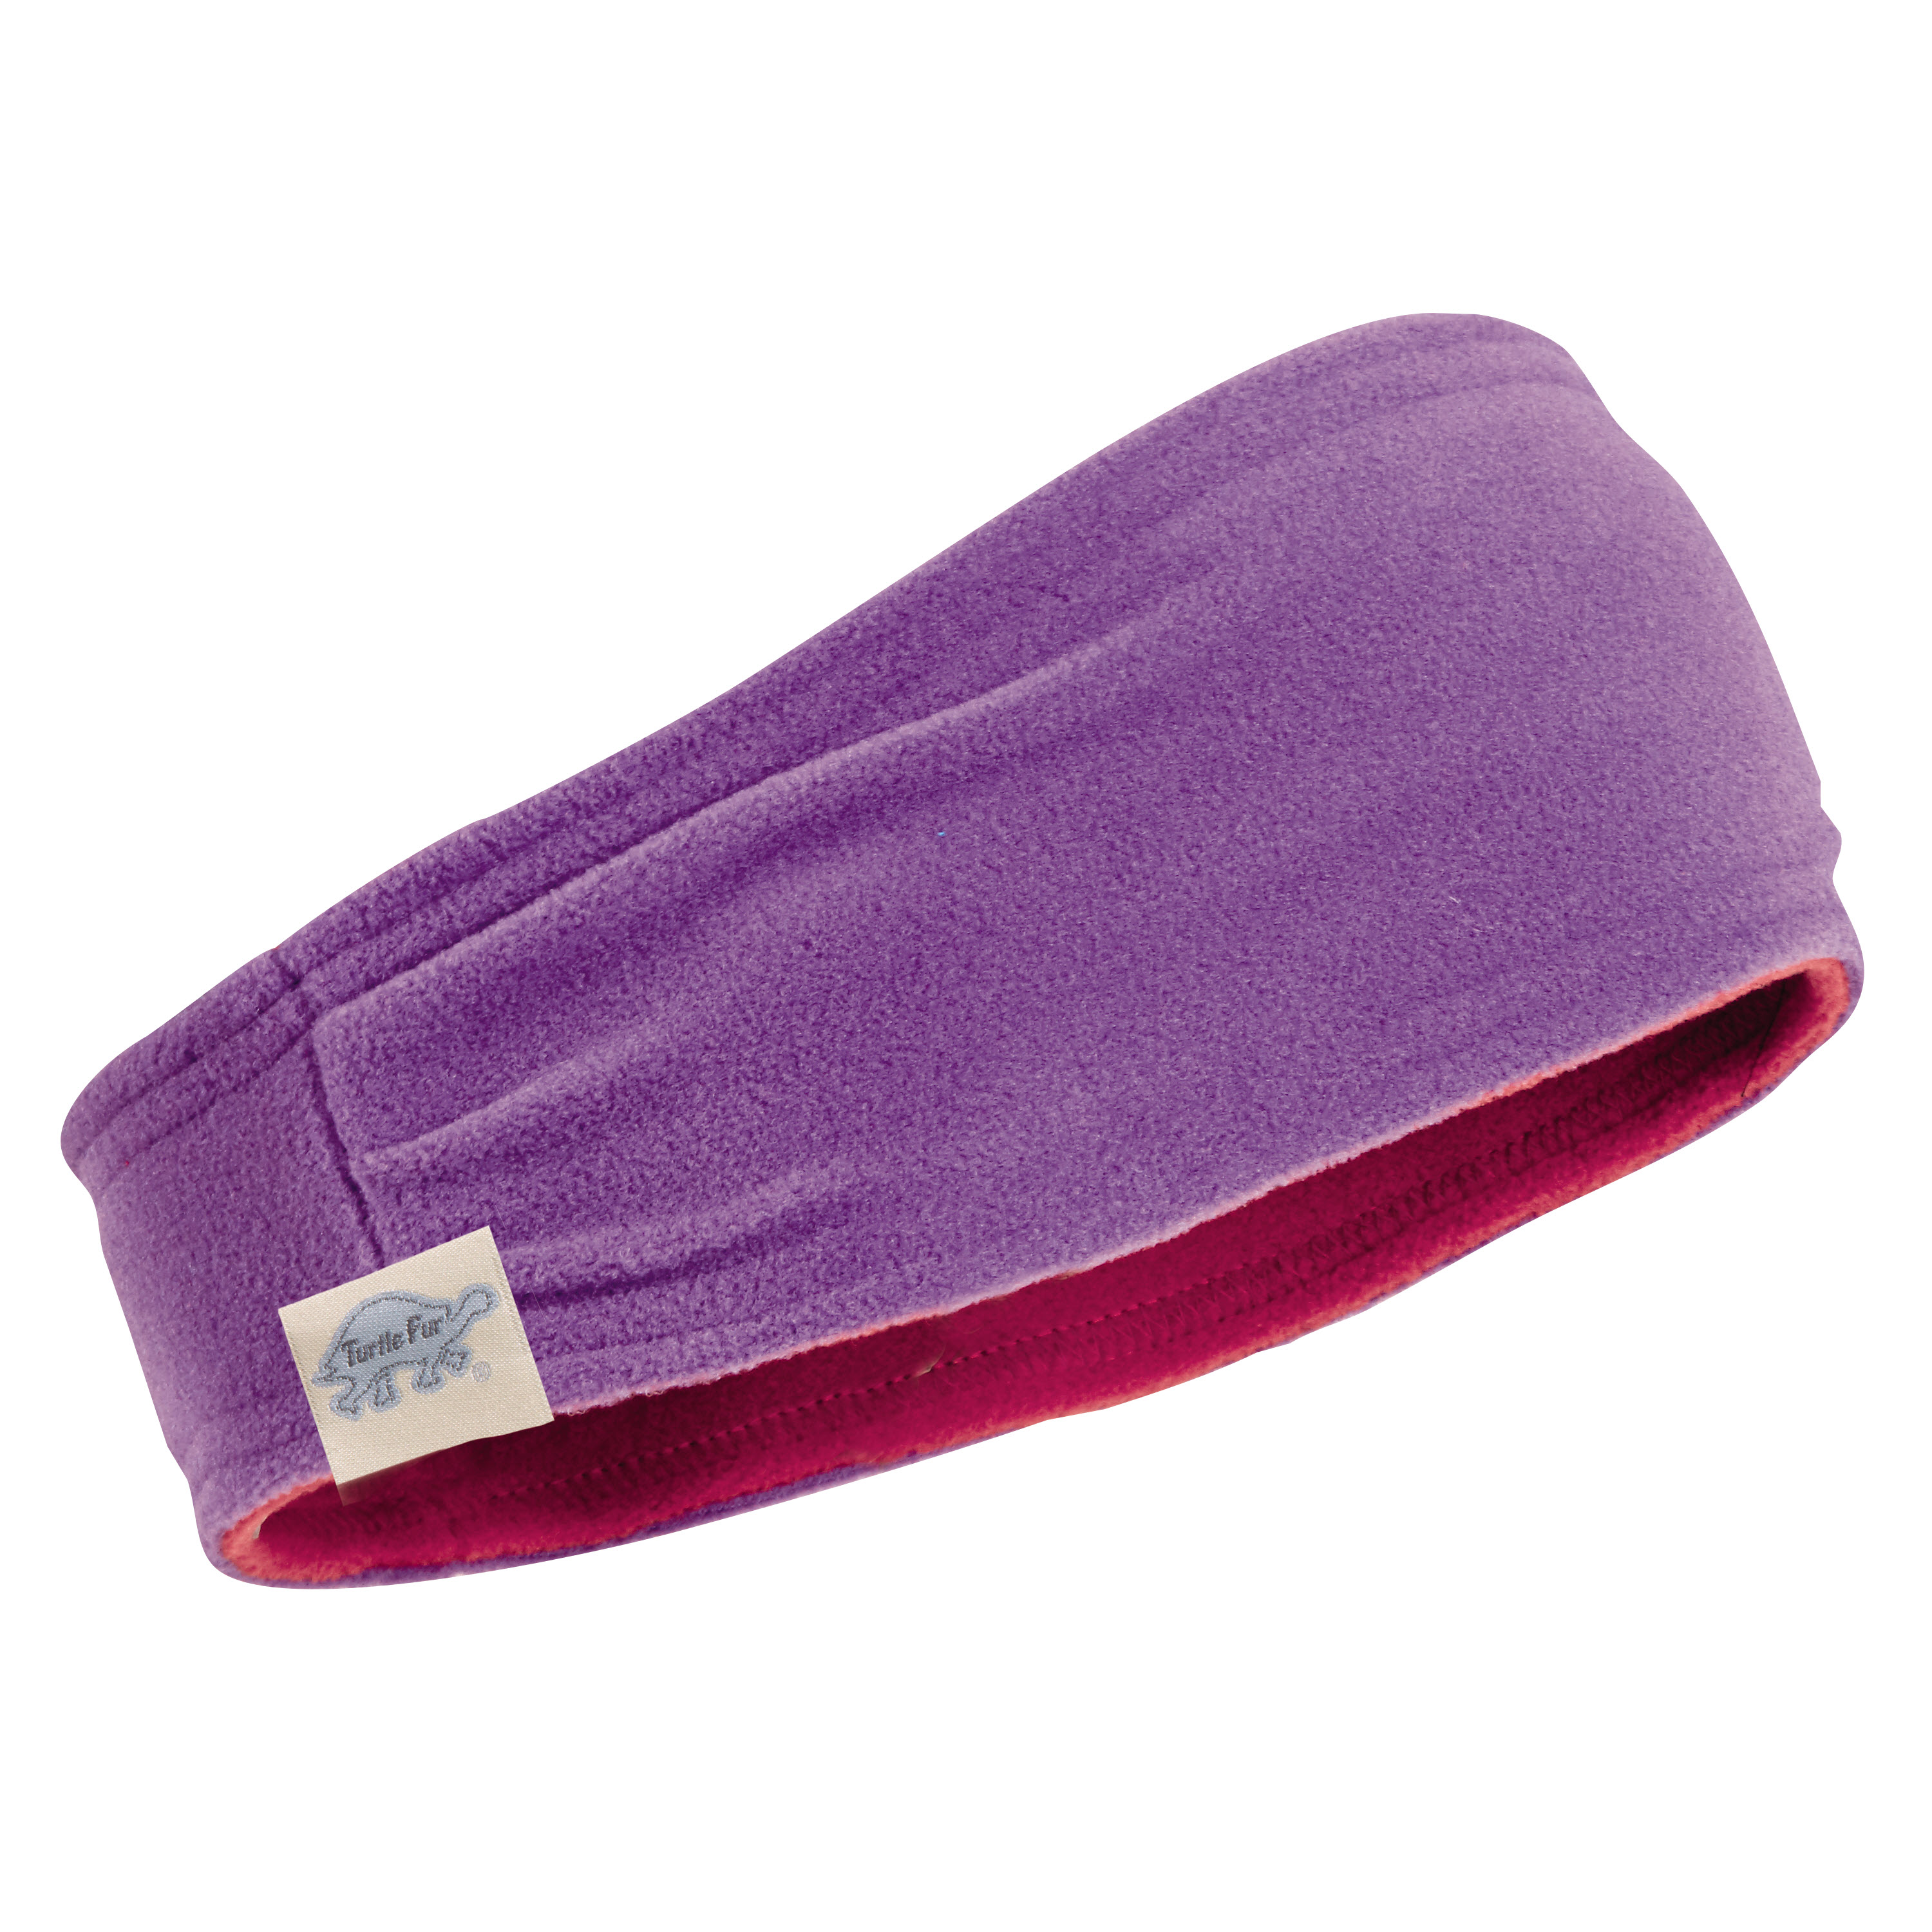 Turtle Fur Double-Layer Micro Fur Performance Fleece Dynamic Reversible Headband